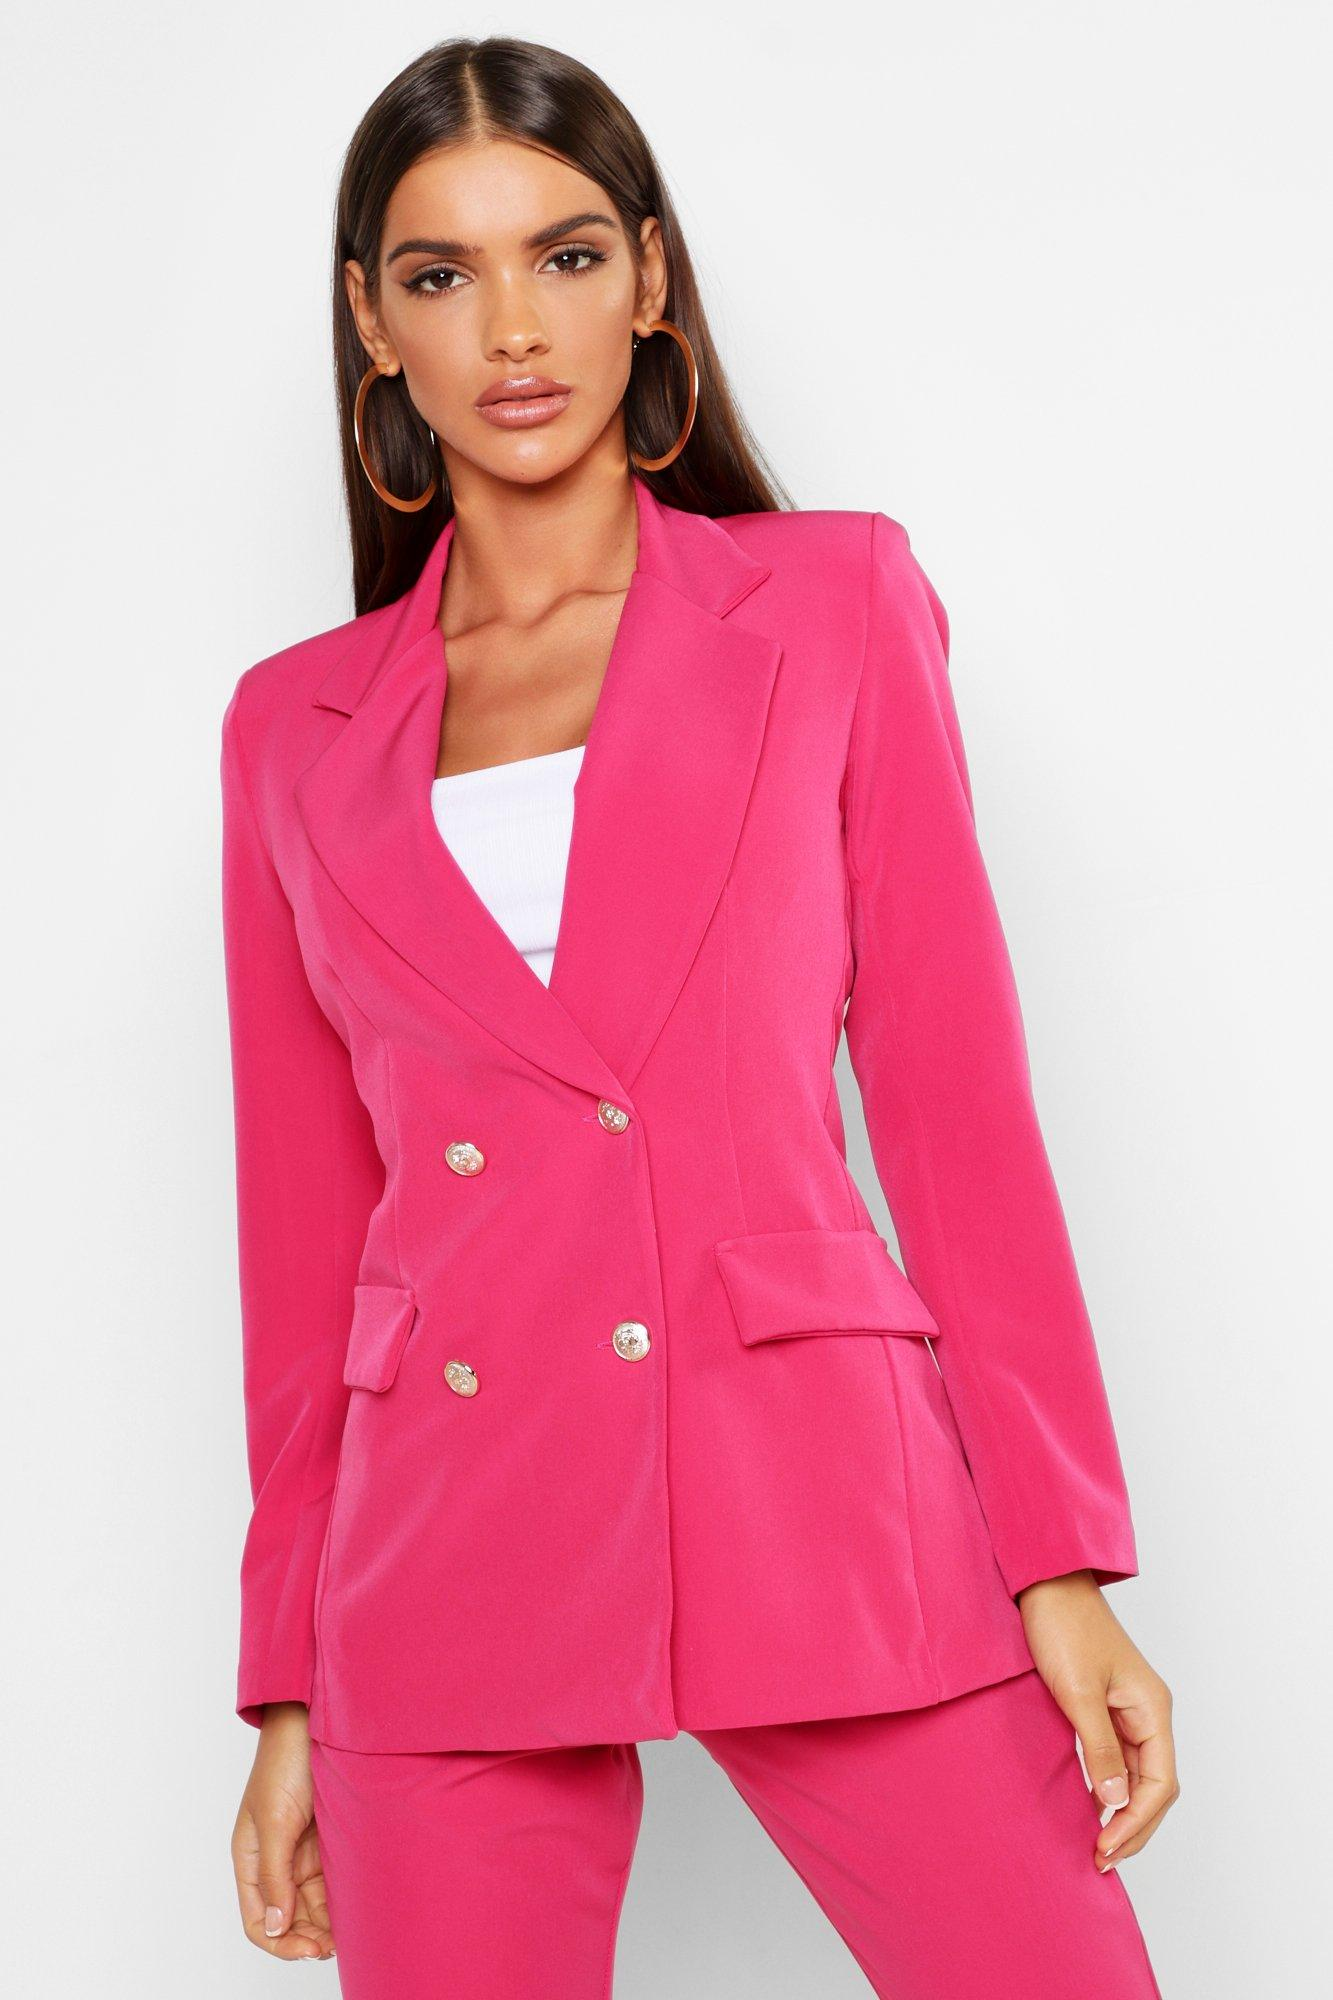 boohoo Womens Double Breasted Boxy Military Blazer - Pink - 10, Pink